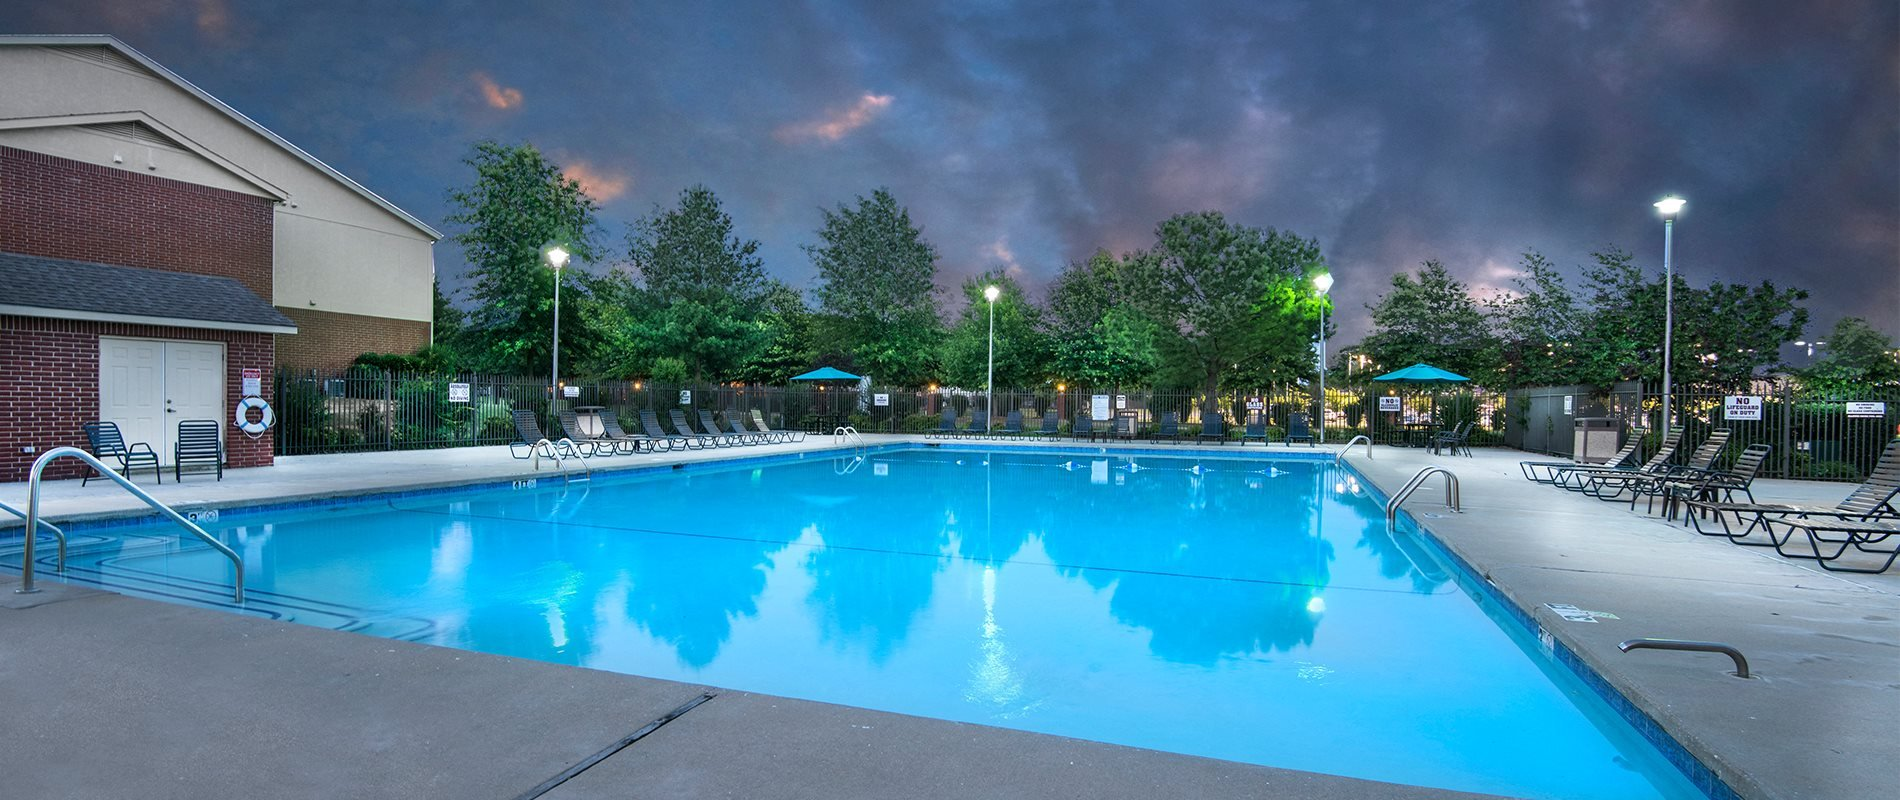 The links at bentonville apartments in bentonville ar for Bentonville pool